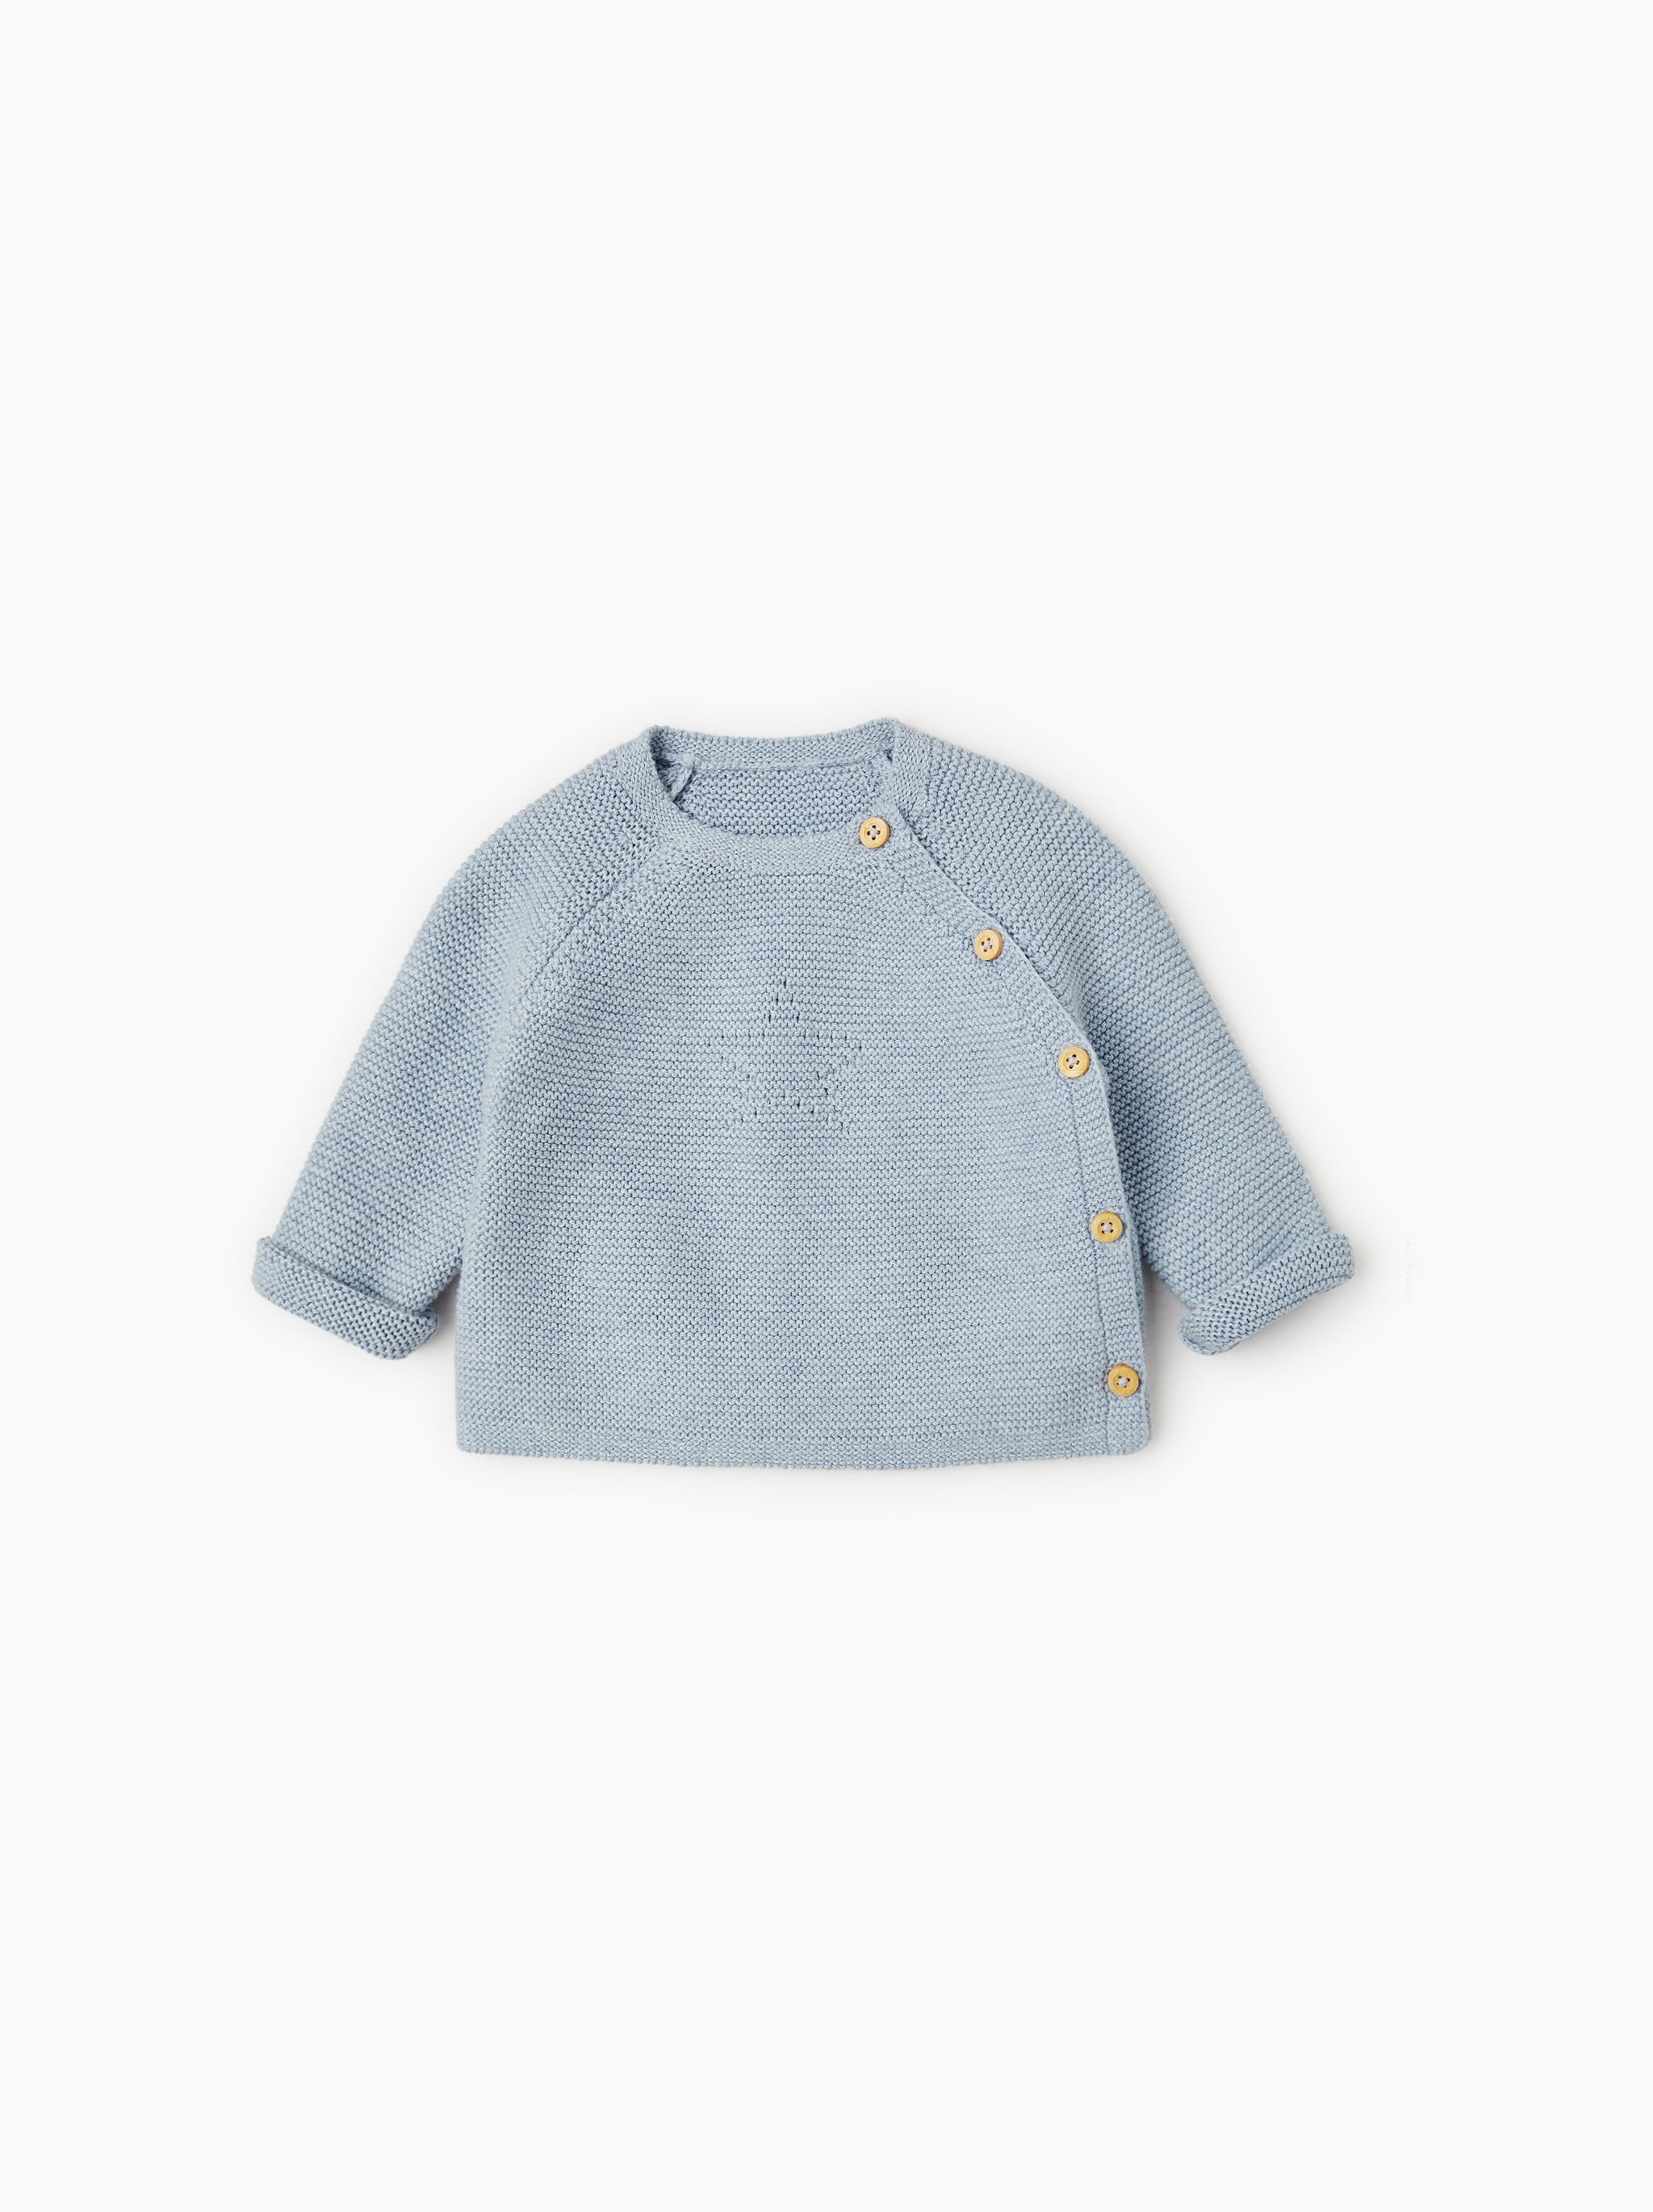 new product 5187c df715 Zara BASIC CABLE KNIT SWEATER